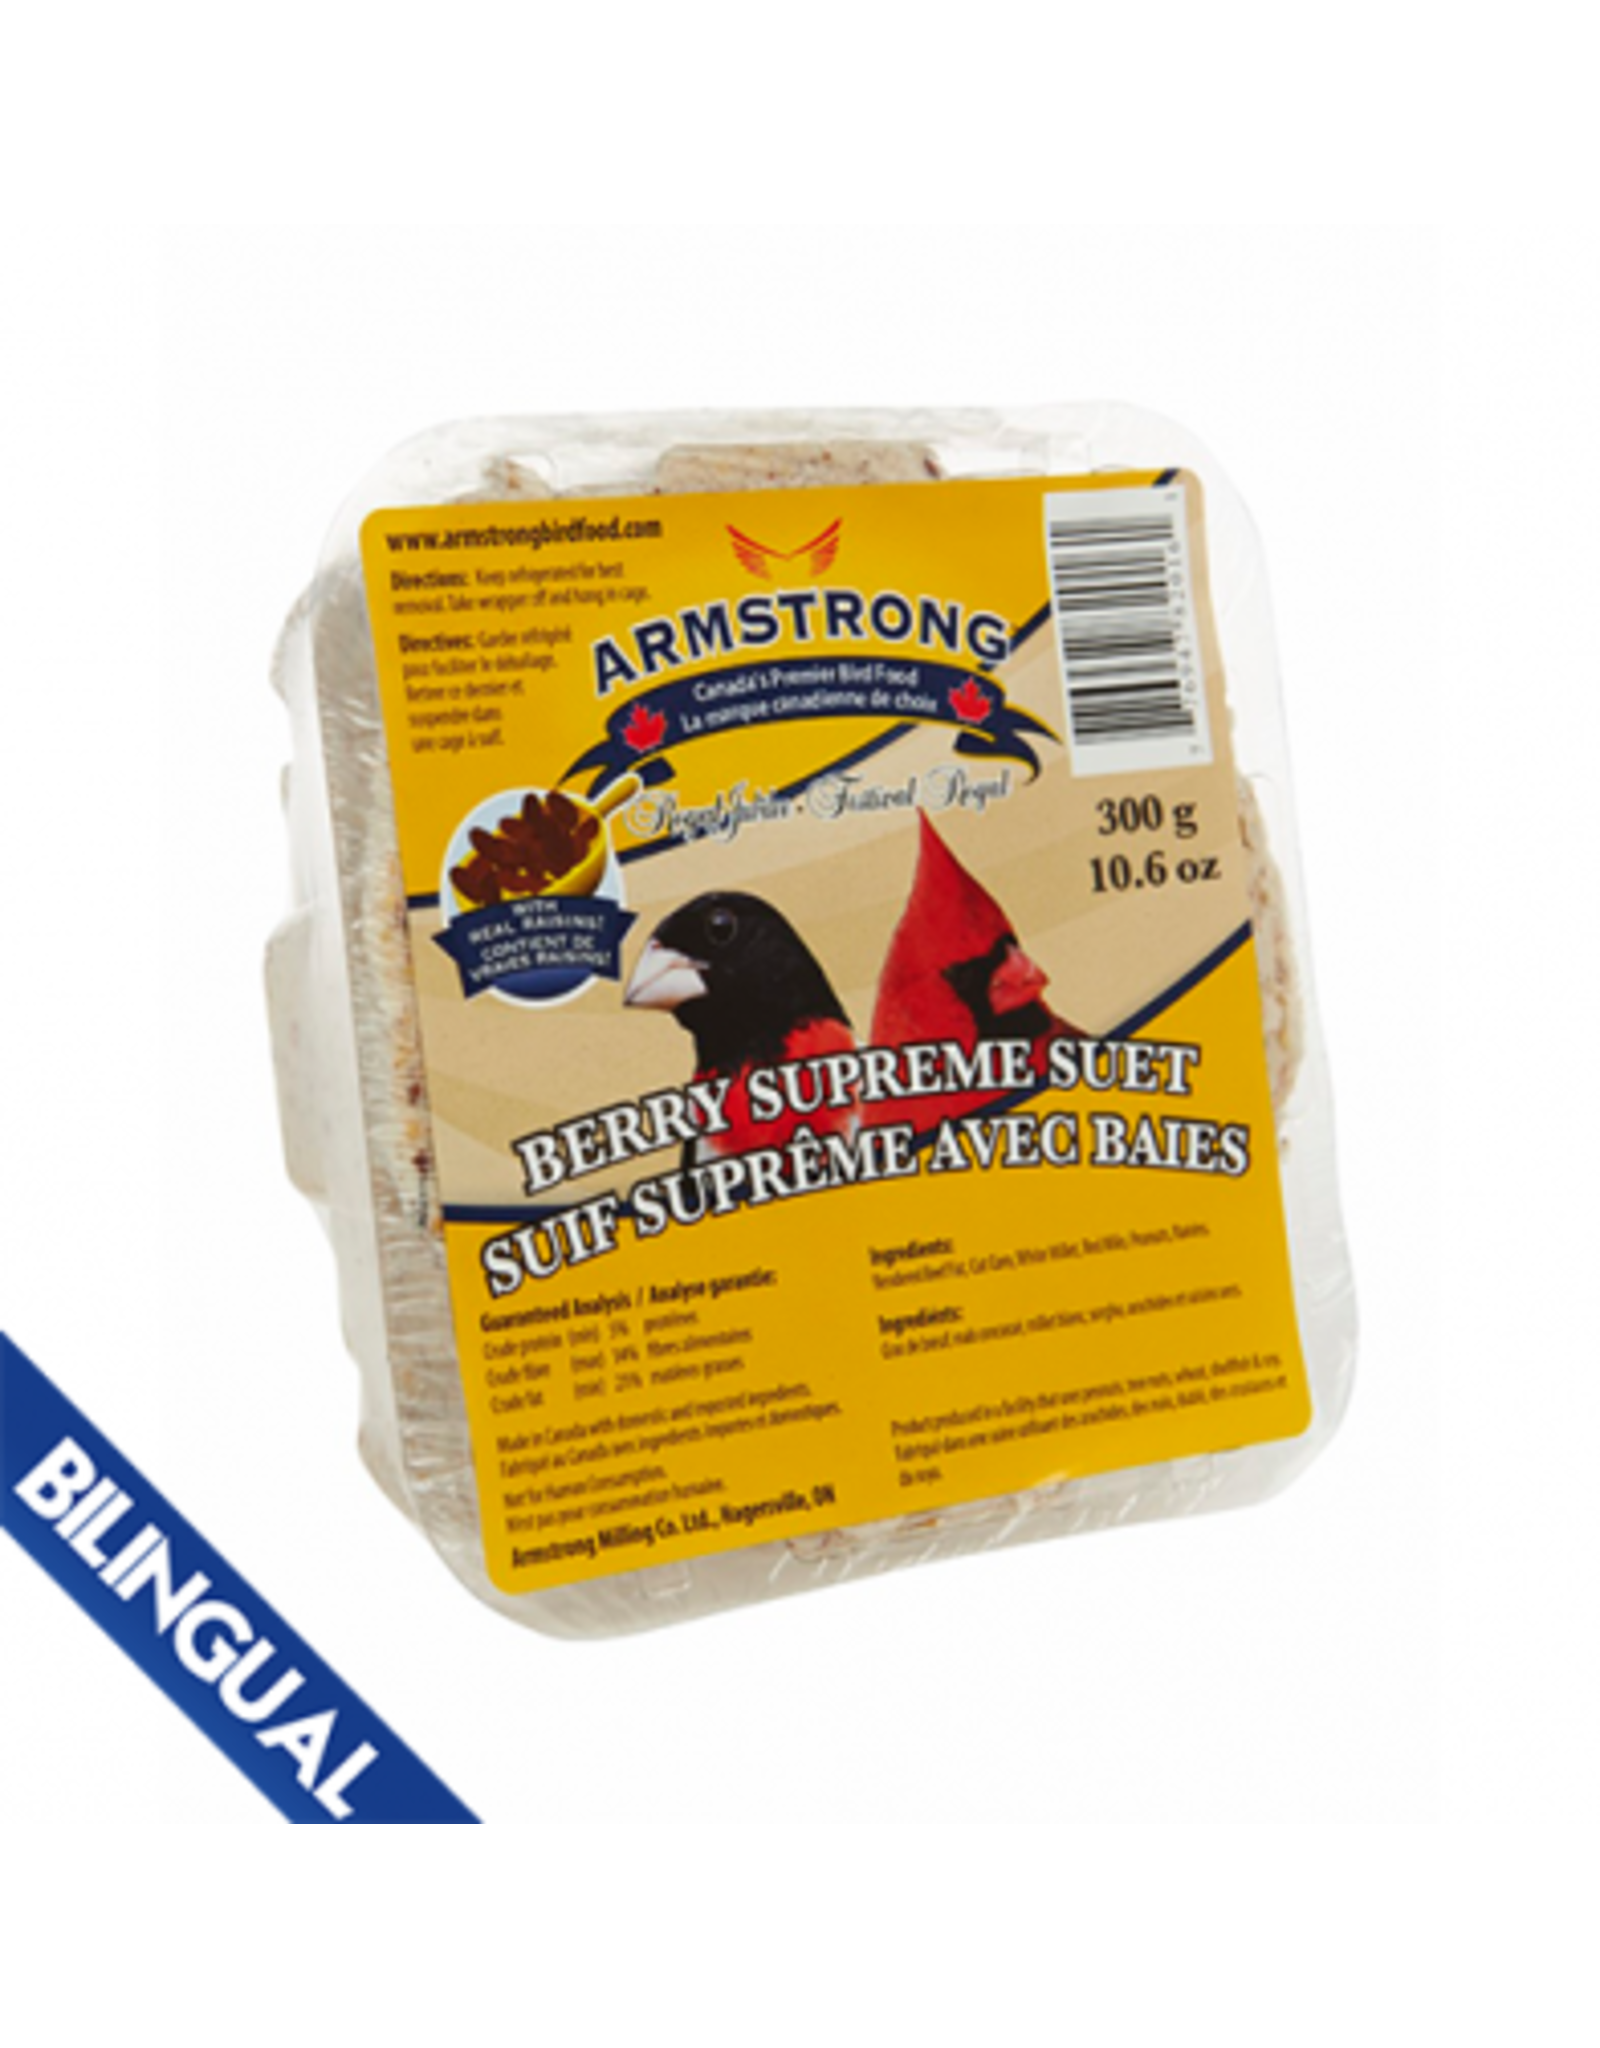 Armstrong Milling/ Scotts ARMSTRONG SUET BERRY SUPREME 300G